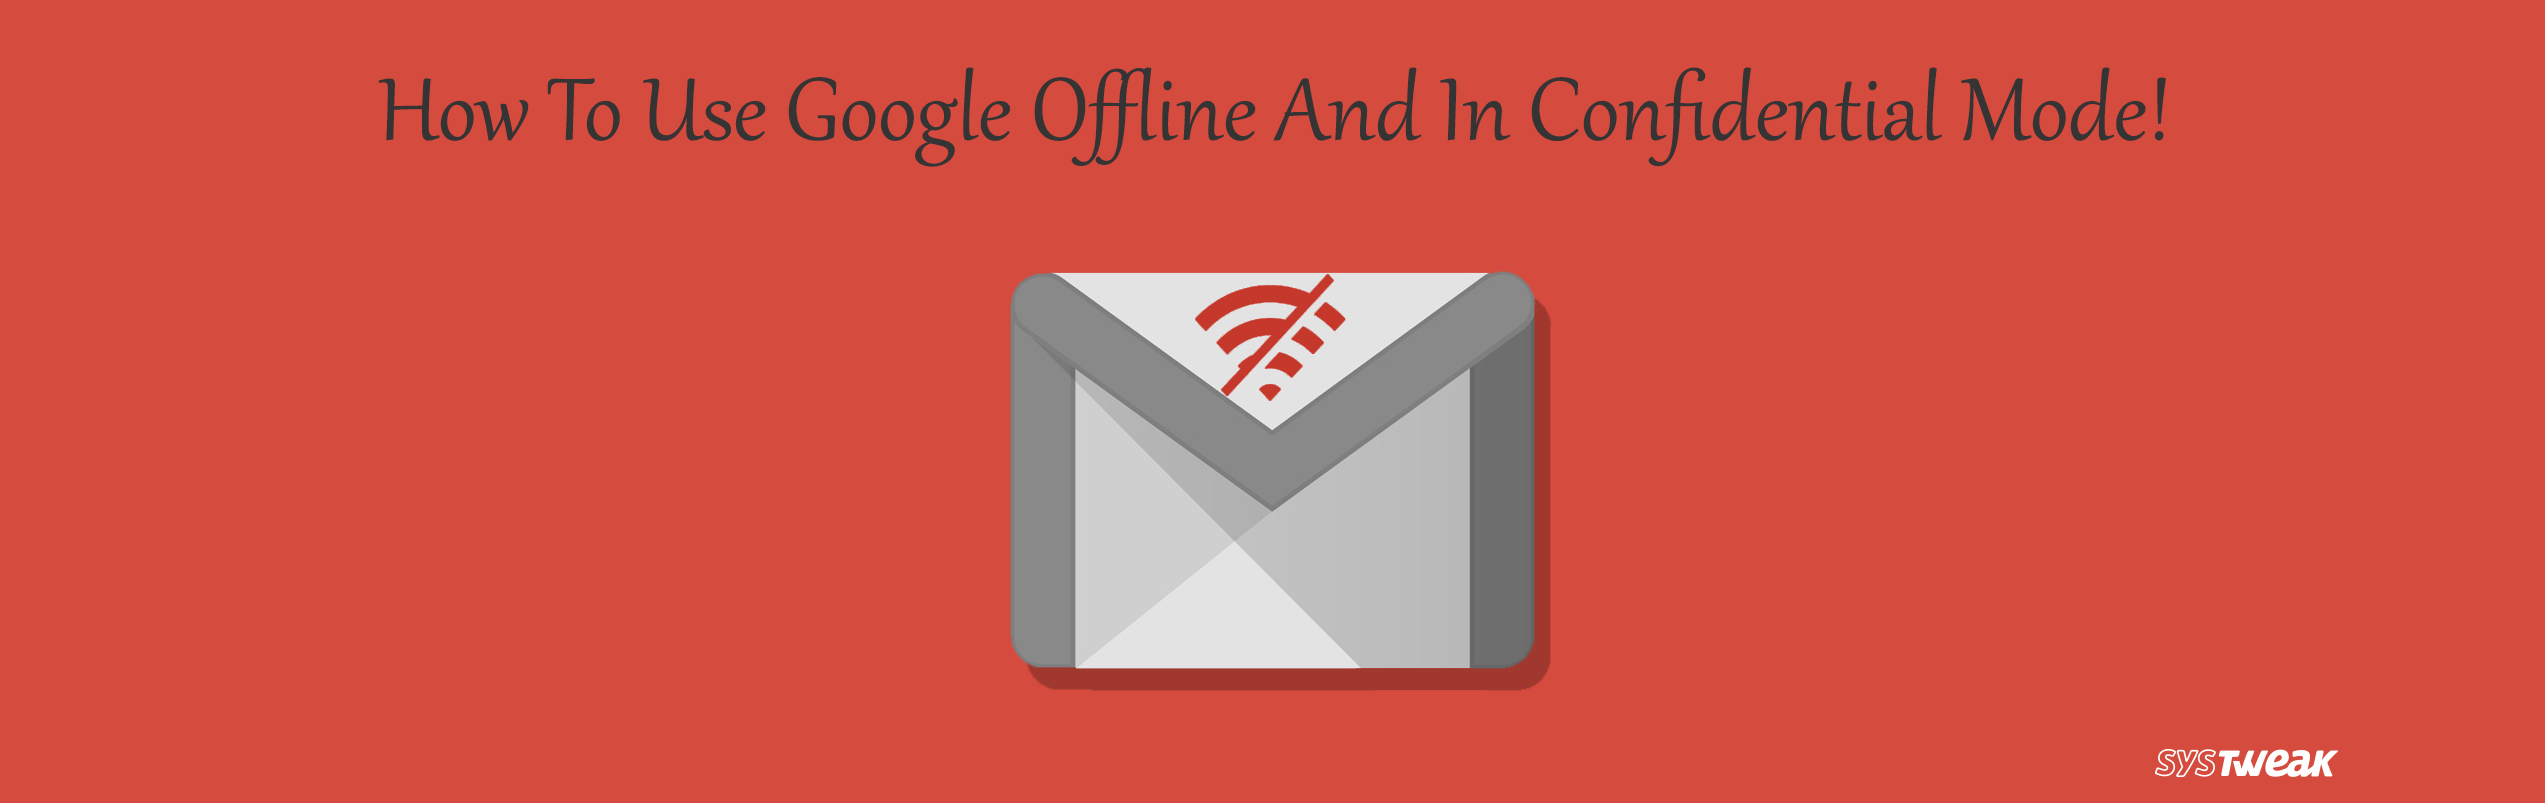 How to Use Gmail's New Offline and Confidential Mode